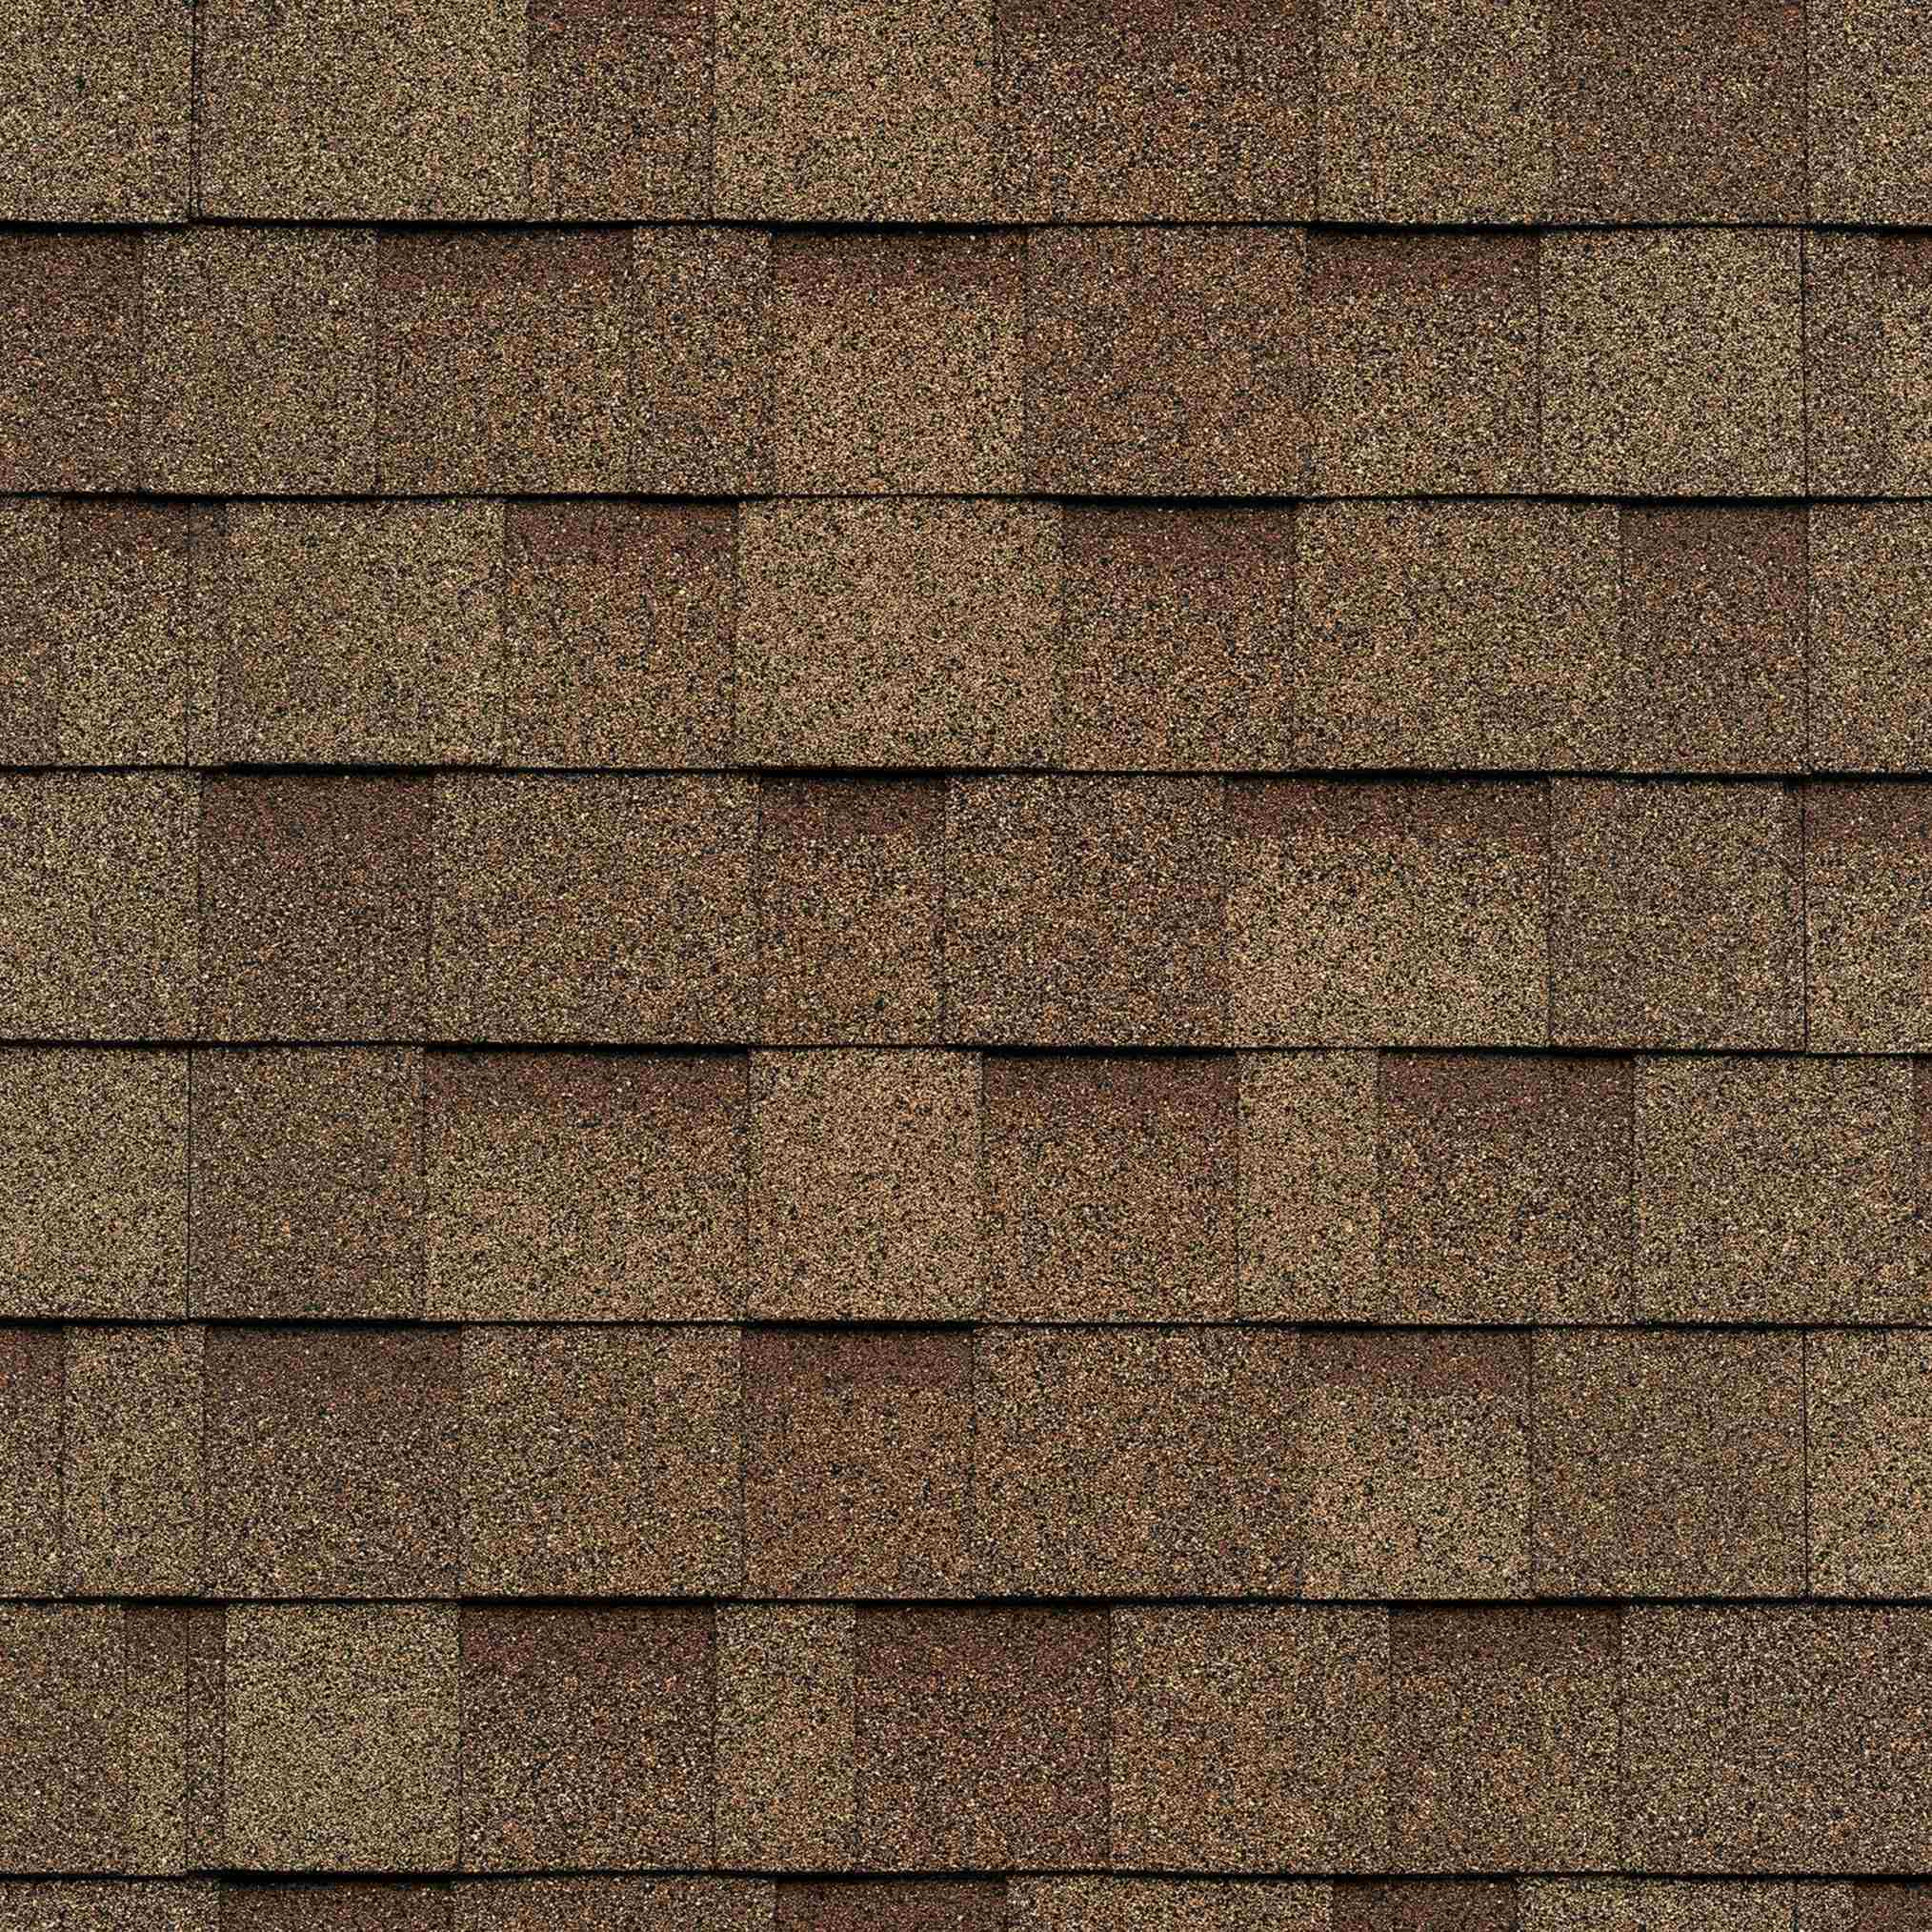 Cambridge Architectural Roofing Shingles - Laminated Roof Shingles